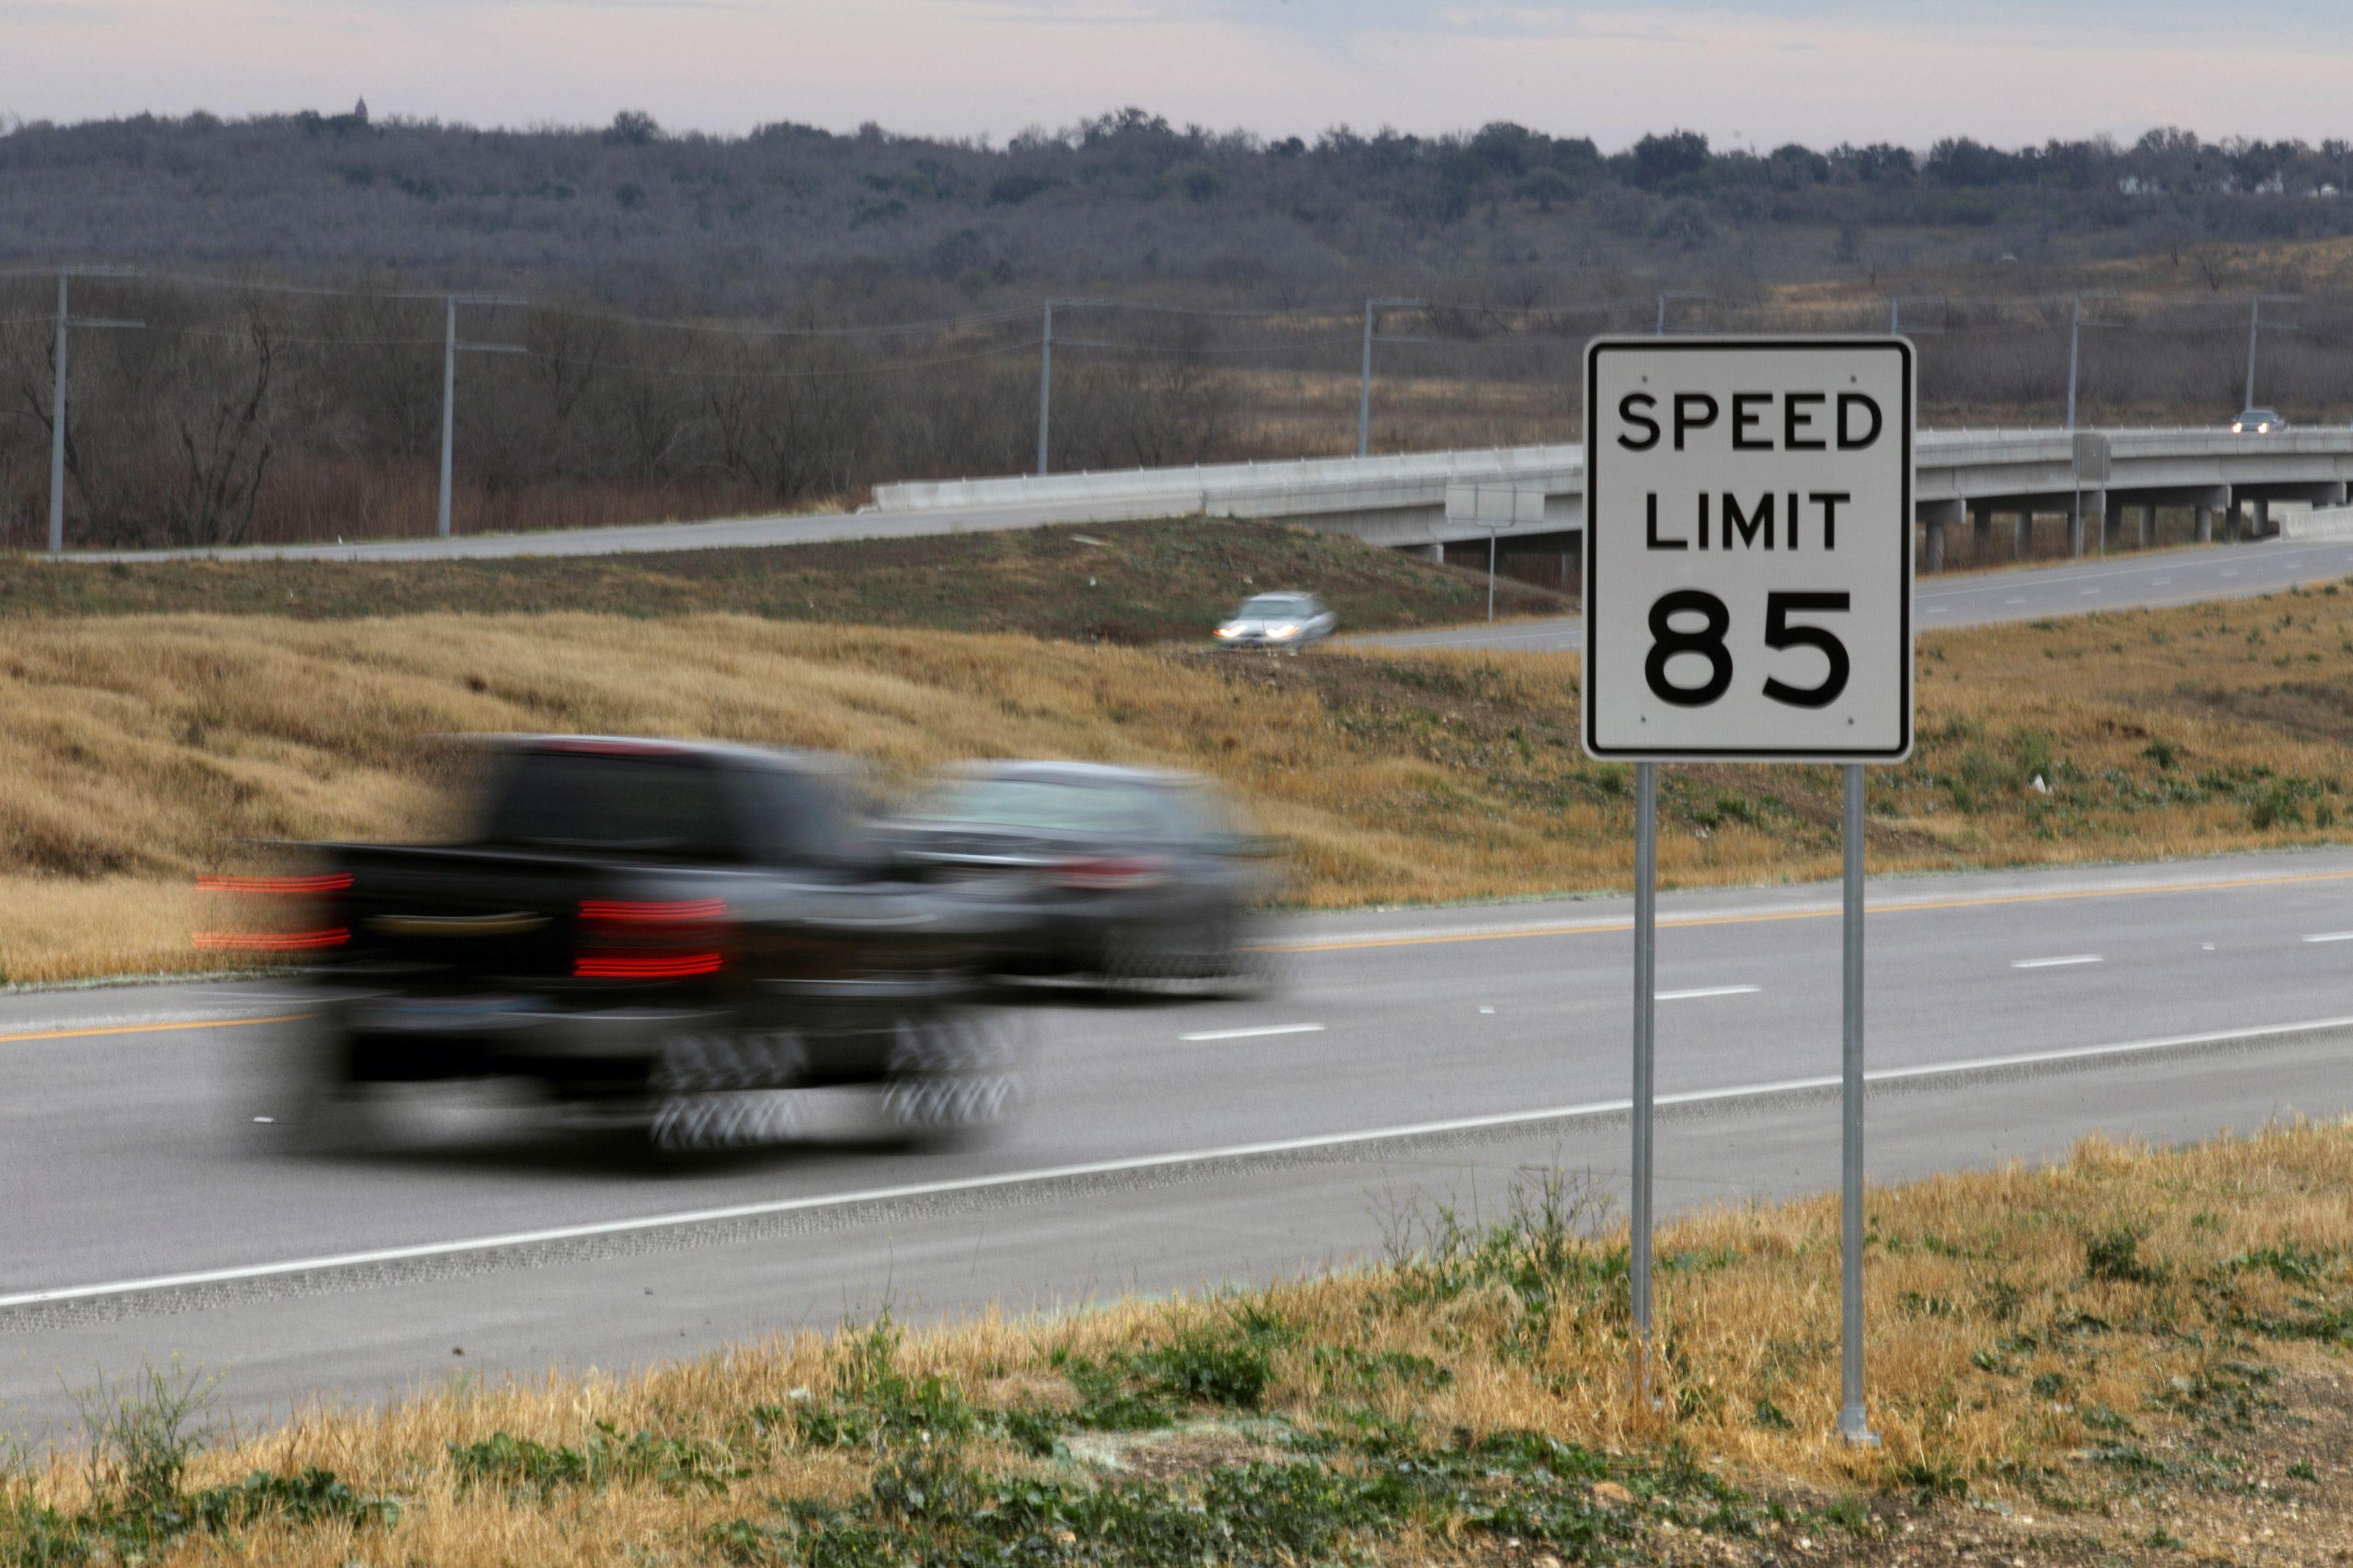 A California legislator proposing no speed limit on a highway is in keeping with higher limits in other states. In Texas, you can go 85 mph.